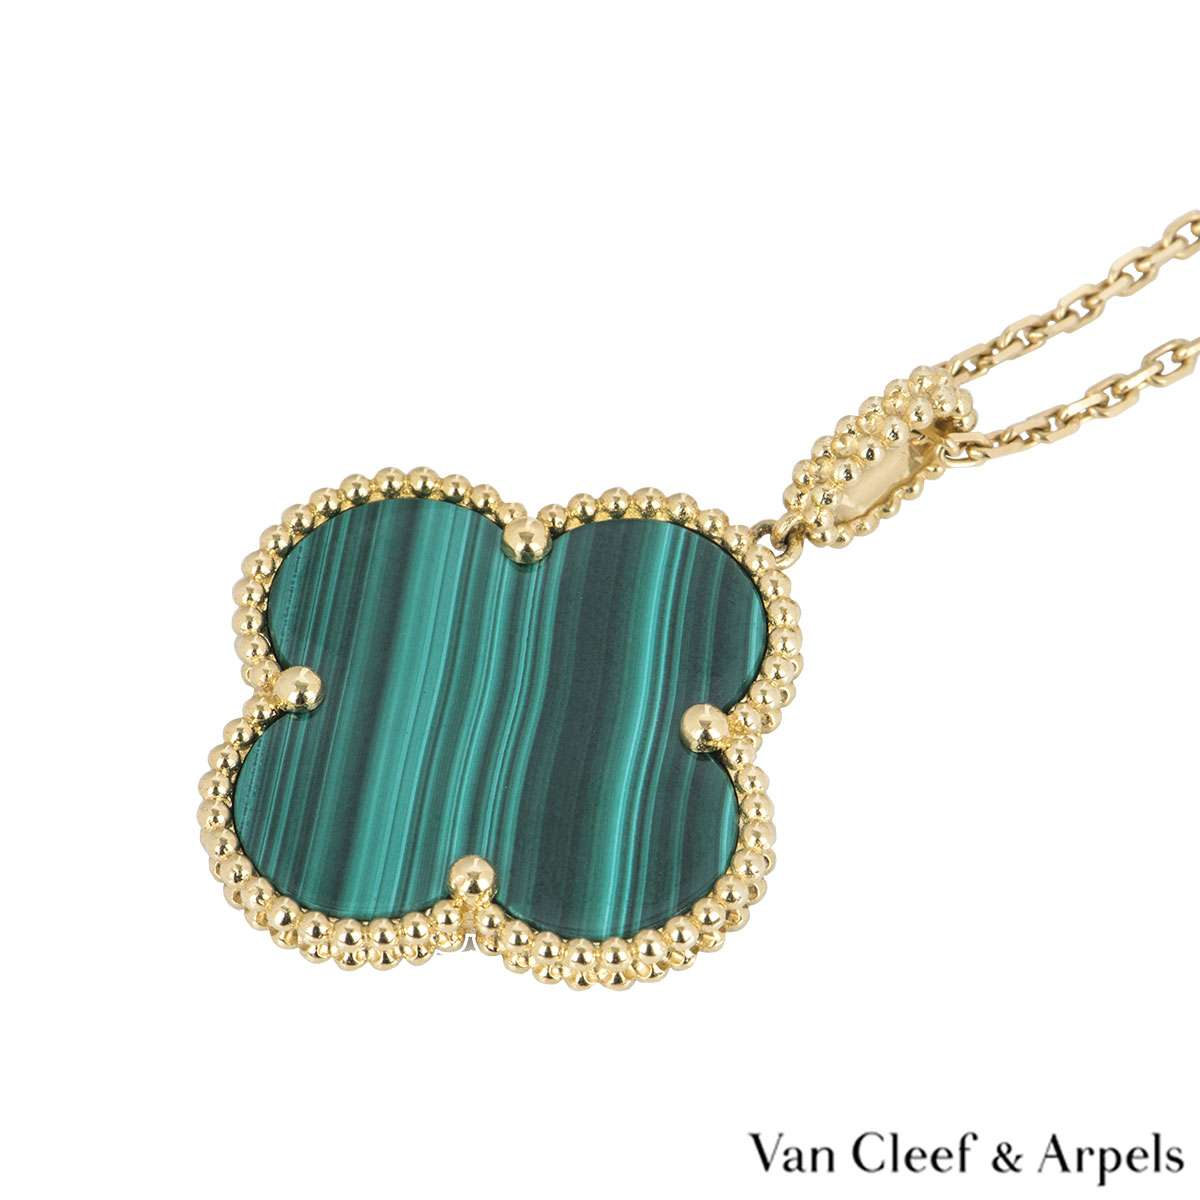 Van Cleef & Arpels Yellow Gold Malachite Magic Alhambra Necklace VCARO3MG00